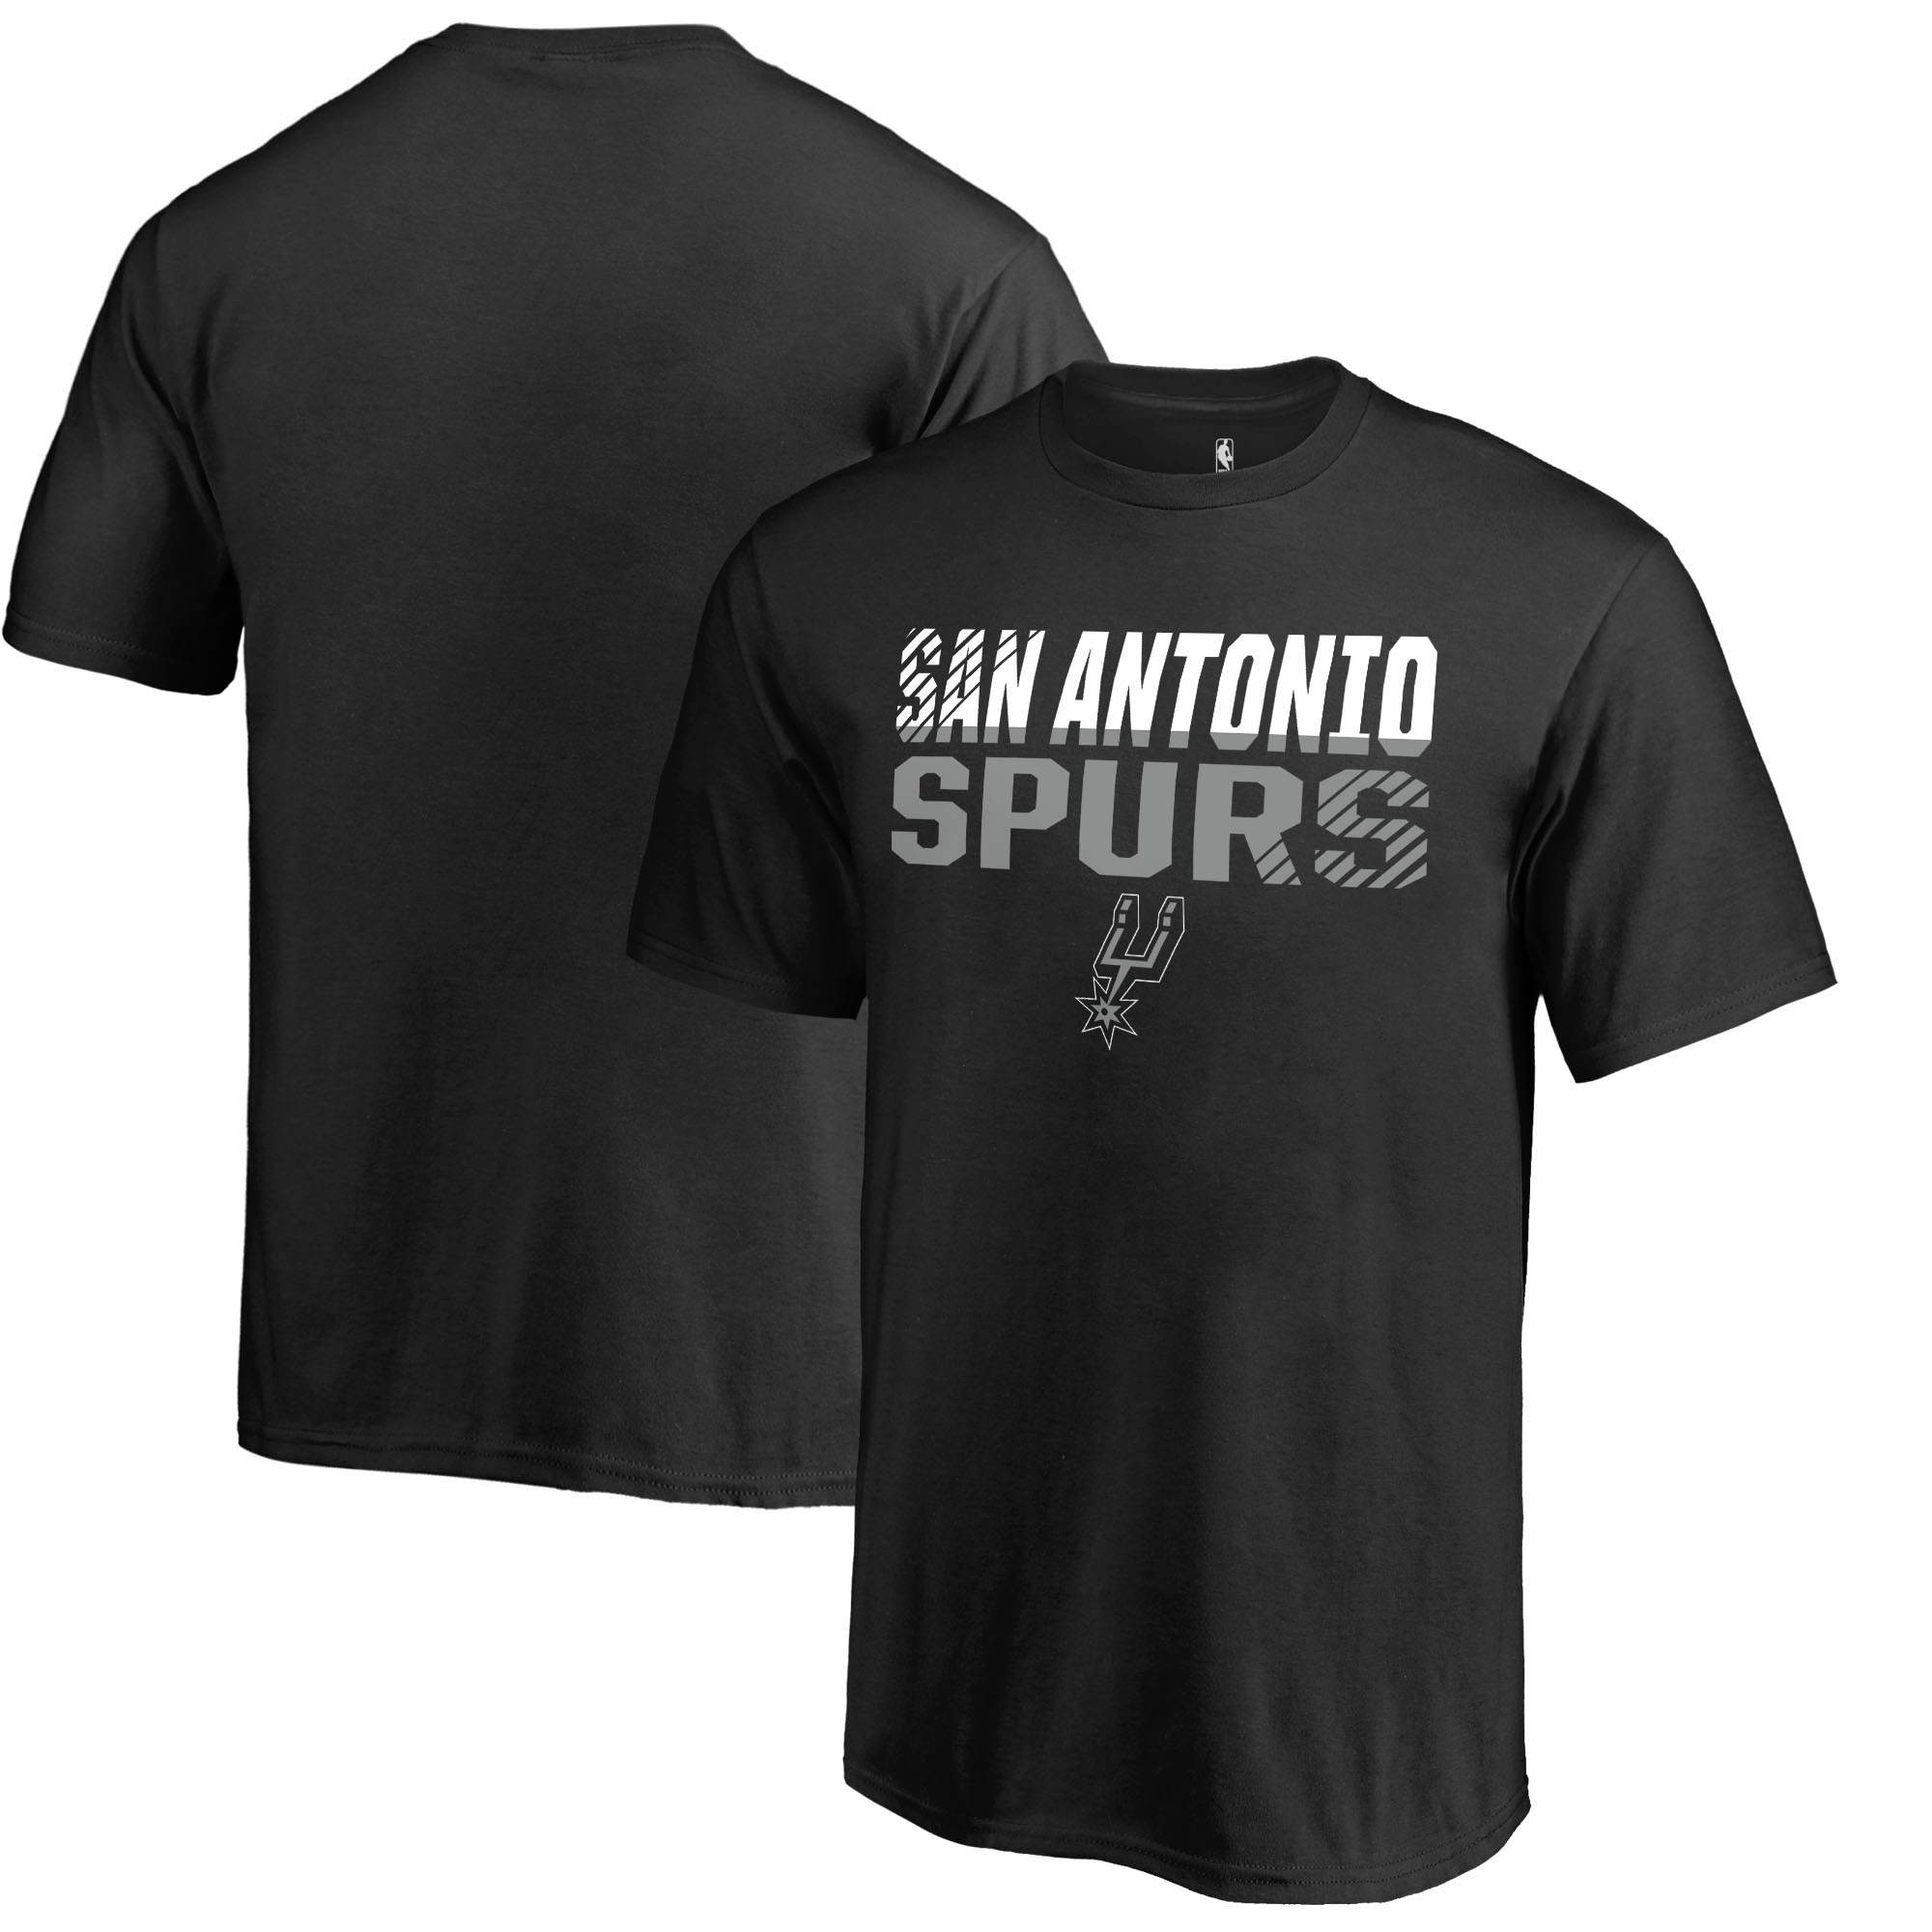 San Antonio Spurs Fanatics Branded Youth Fade Out T-Shirt - Black